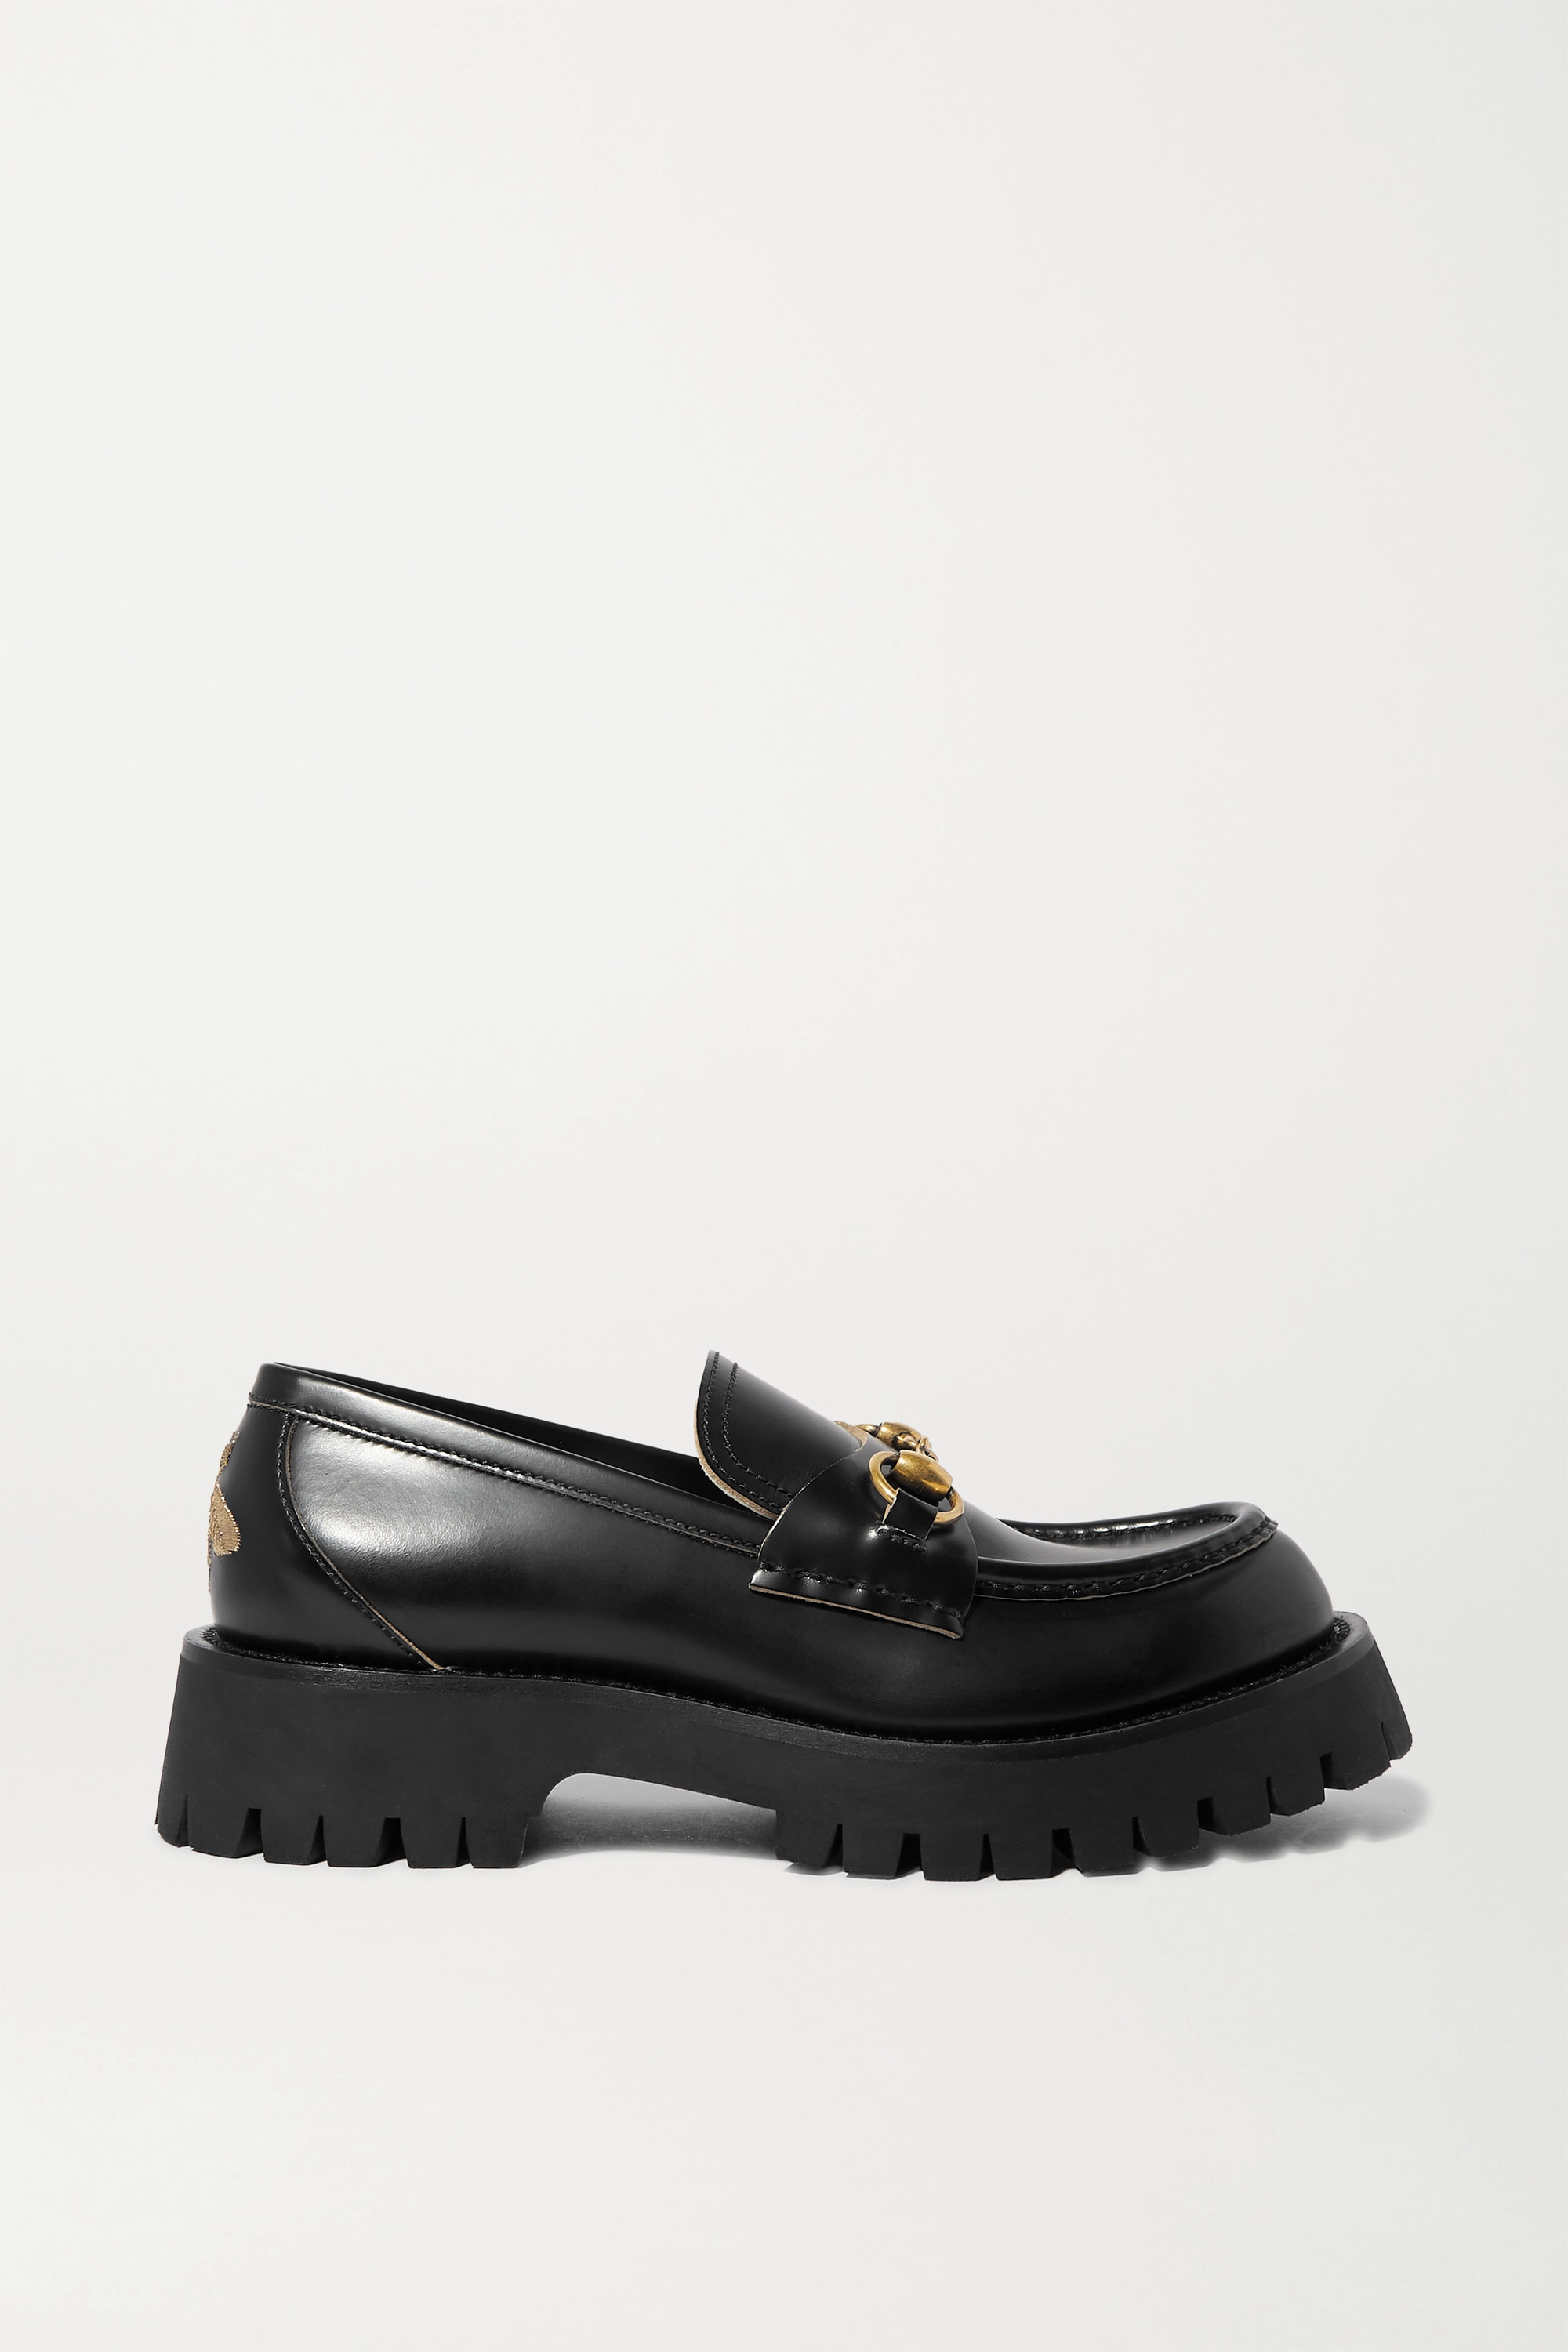 Gucci Horsebit-detailed metallic embroidered leather platform loafers